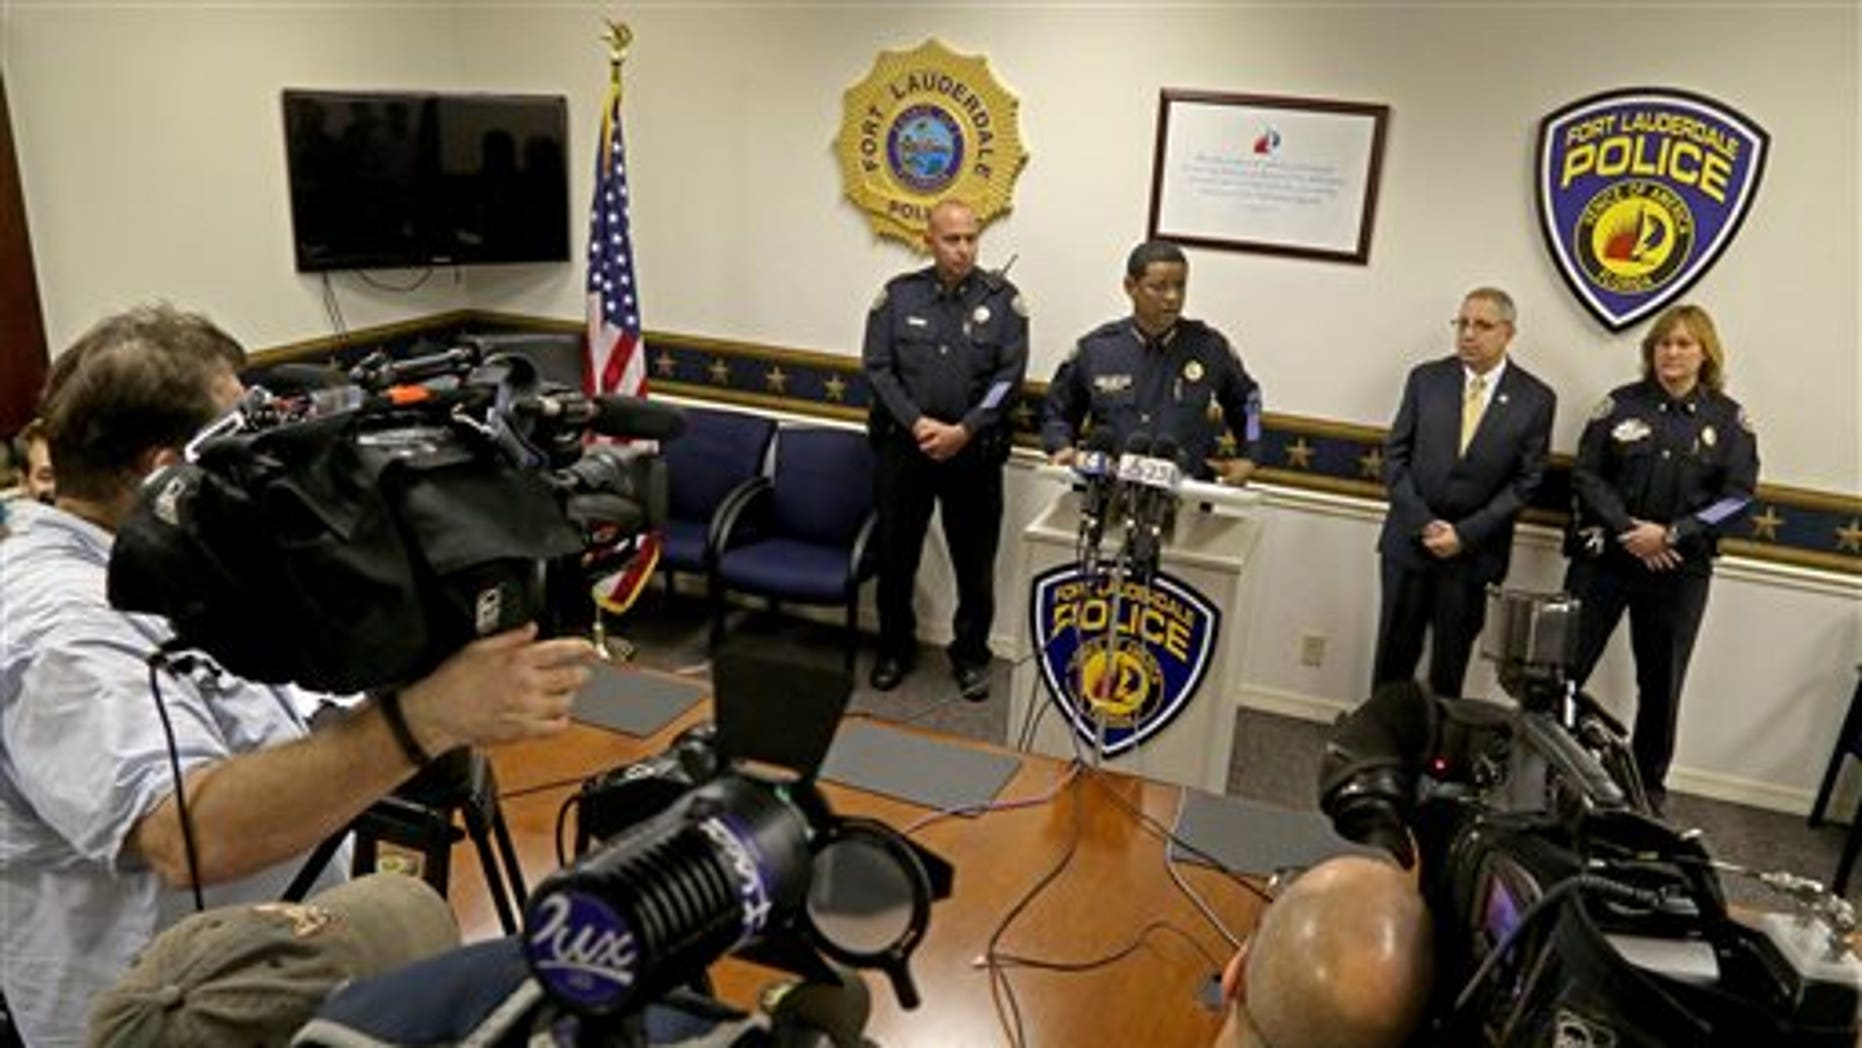 Fort Lauderdale Police Chief Frank Adderly addresses the media on Tuesday, Feb. 24, 2015.